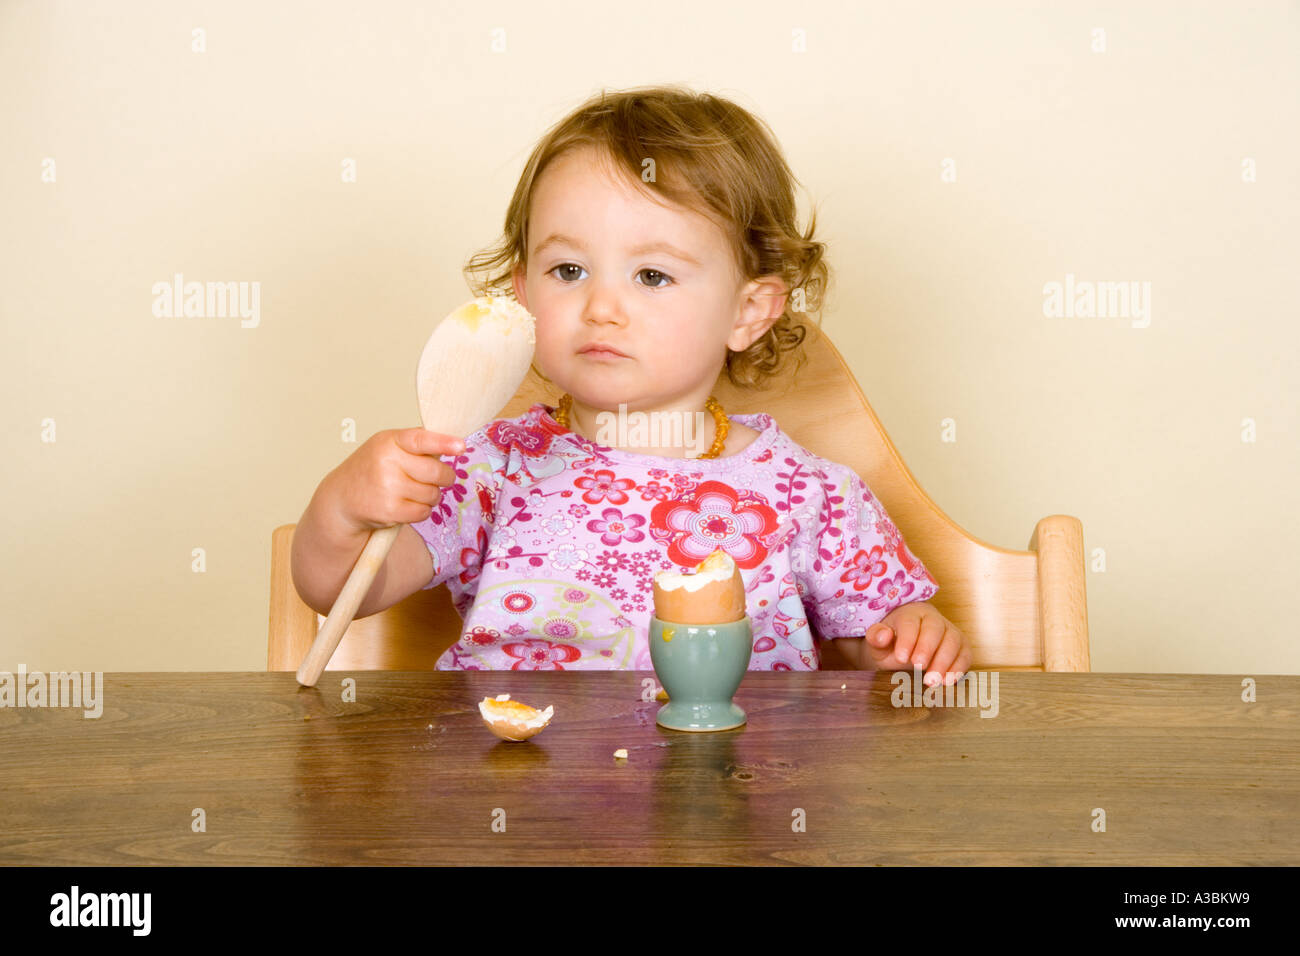 Egg Baby High Chair Baby Eating Boiled Egg In High Chair Stock Photo 6134232 Alamy